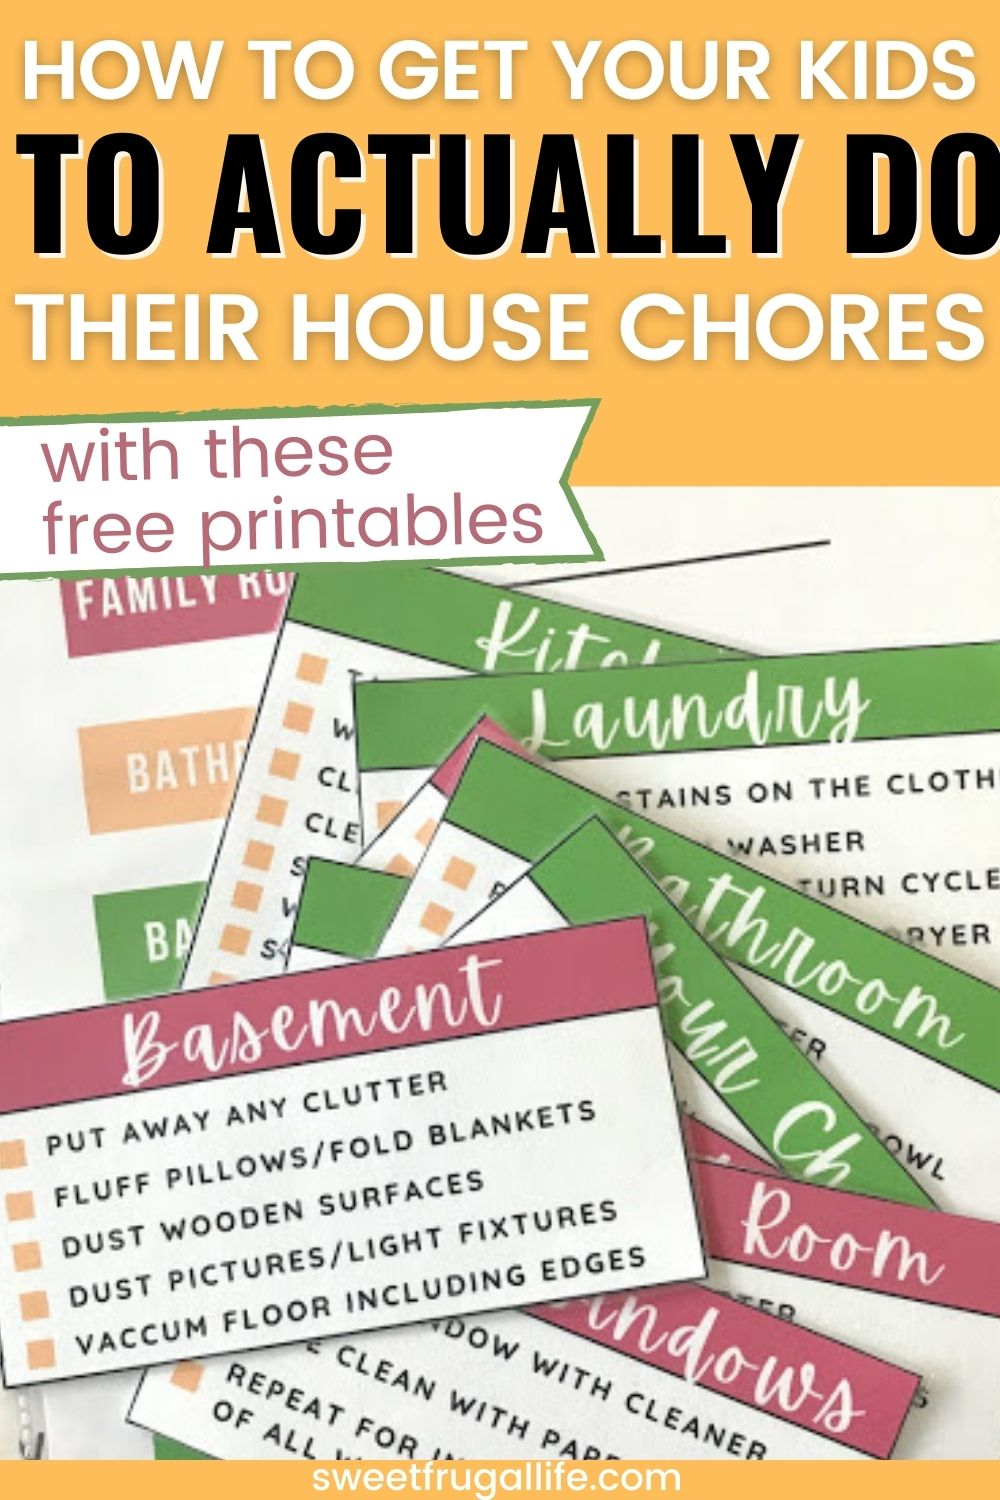 how to get kids to do their chores - free chore chart printable for families